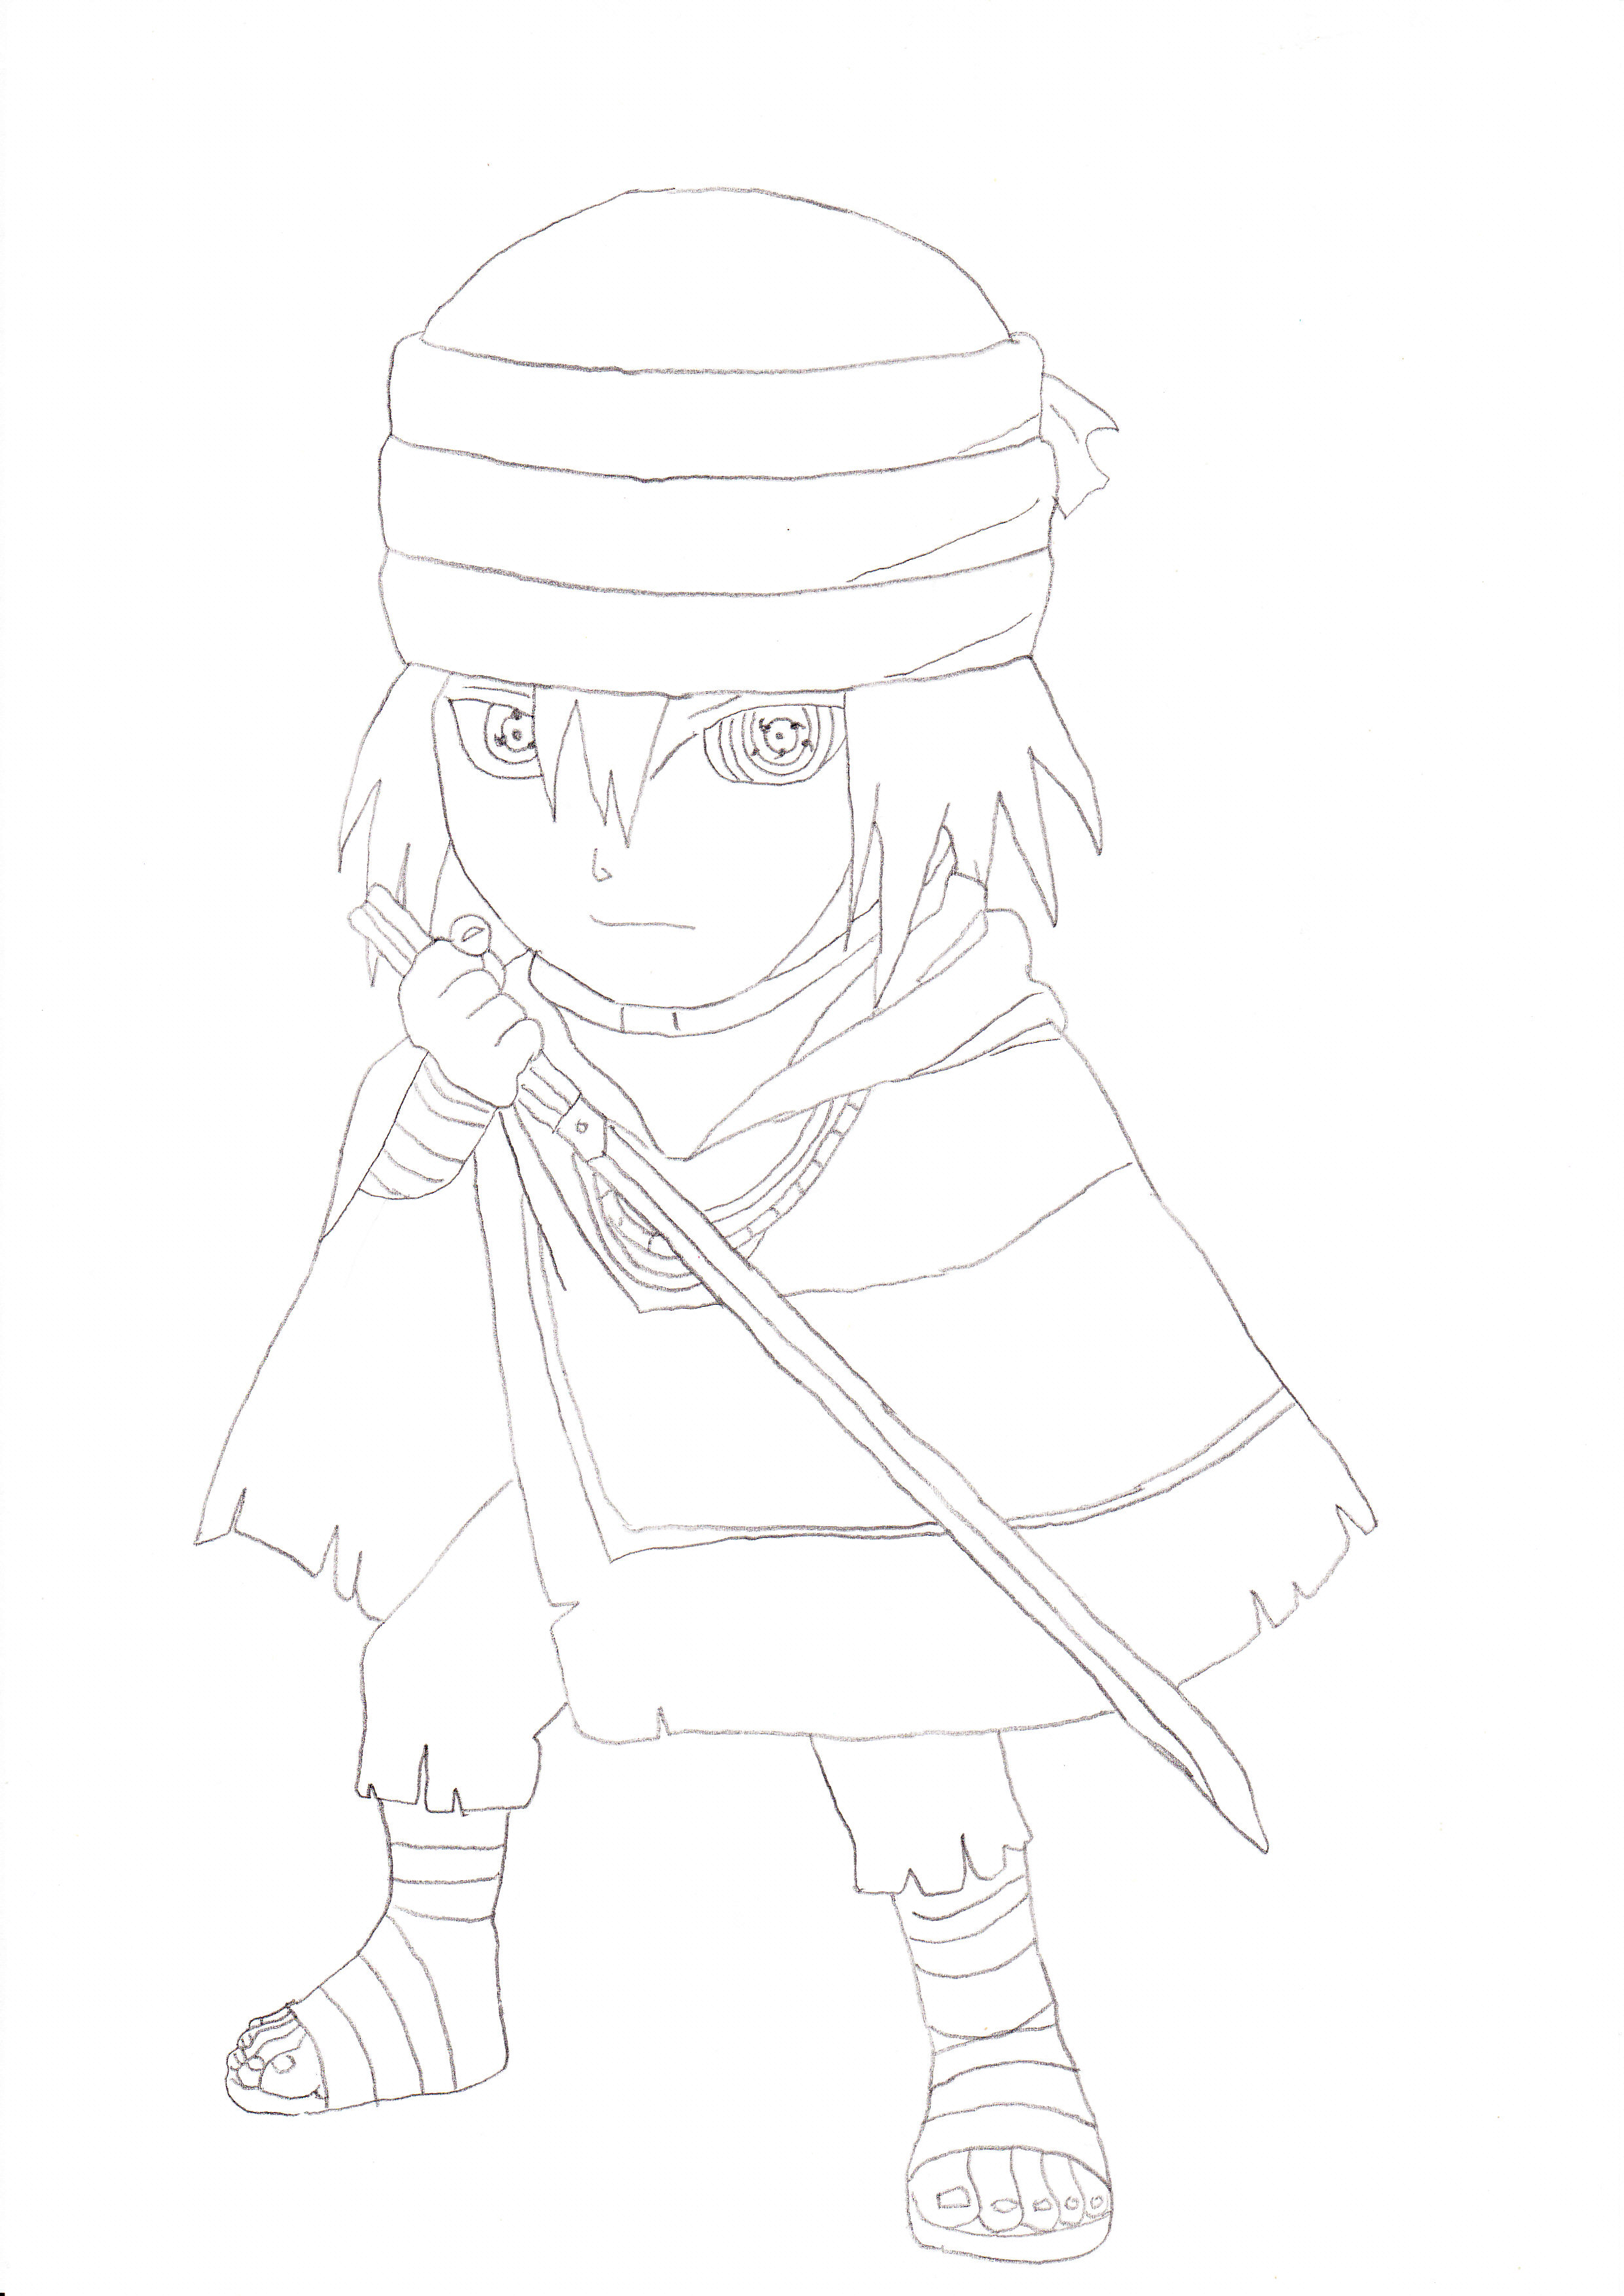 Sasuke Uchiha The Last Chibi by rosolinio on DeviantArt